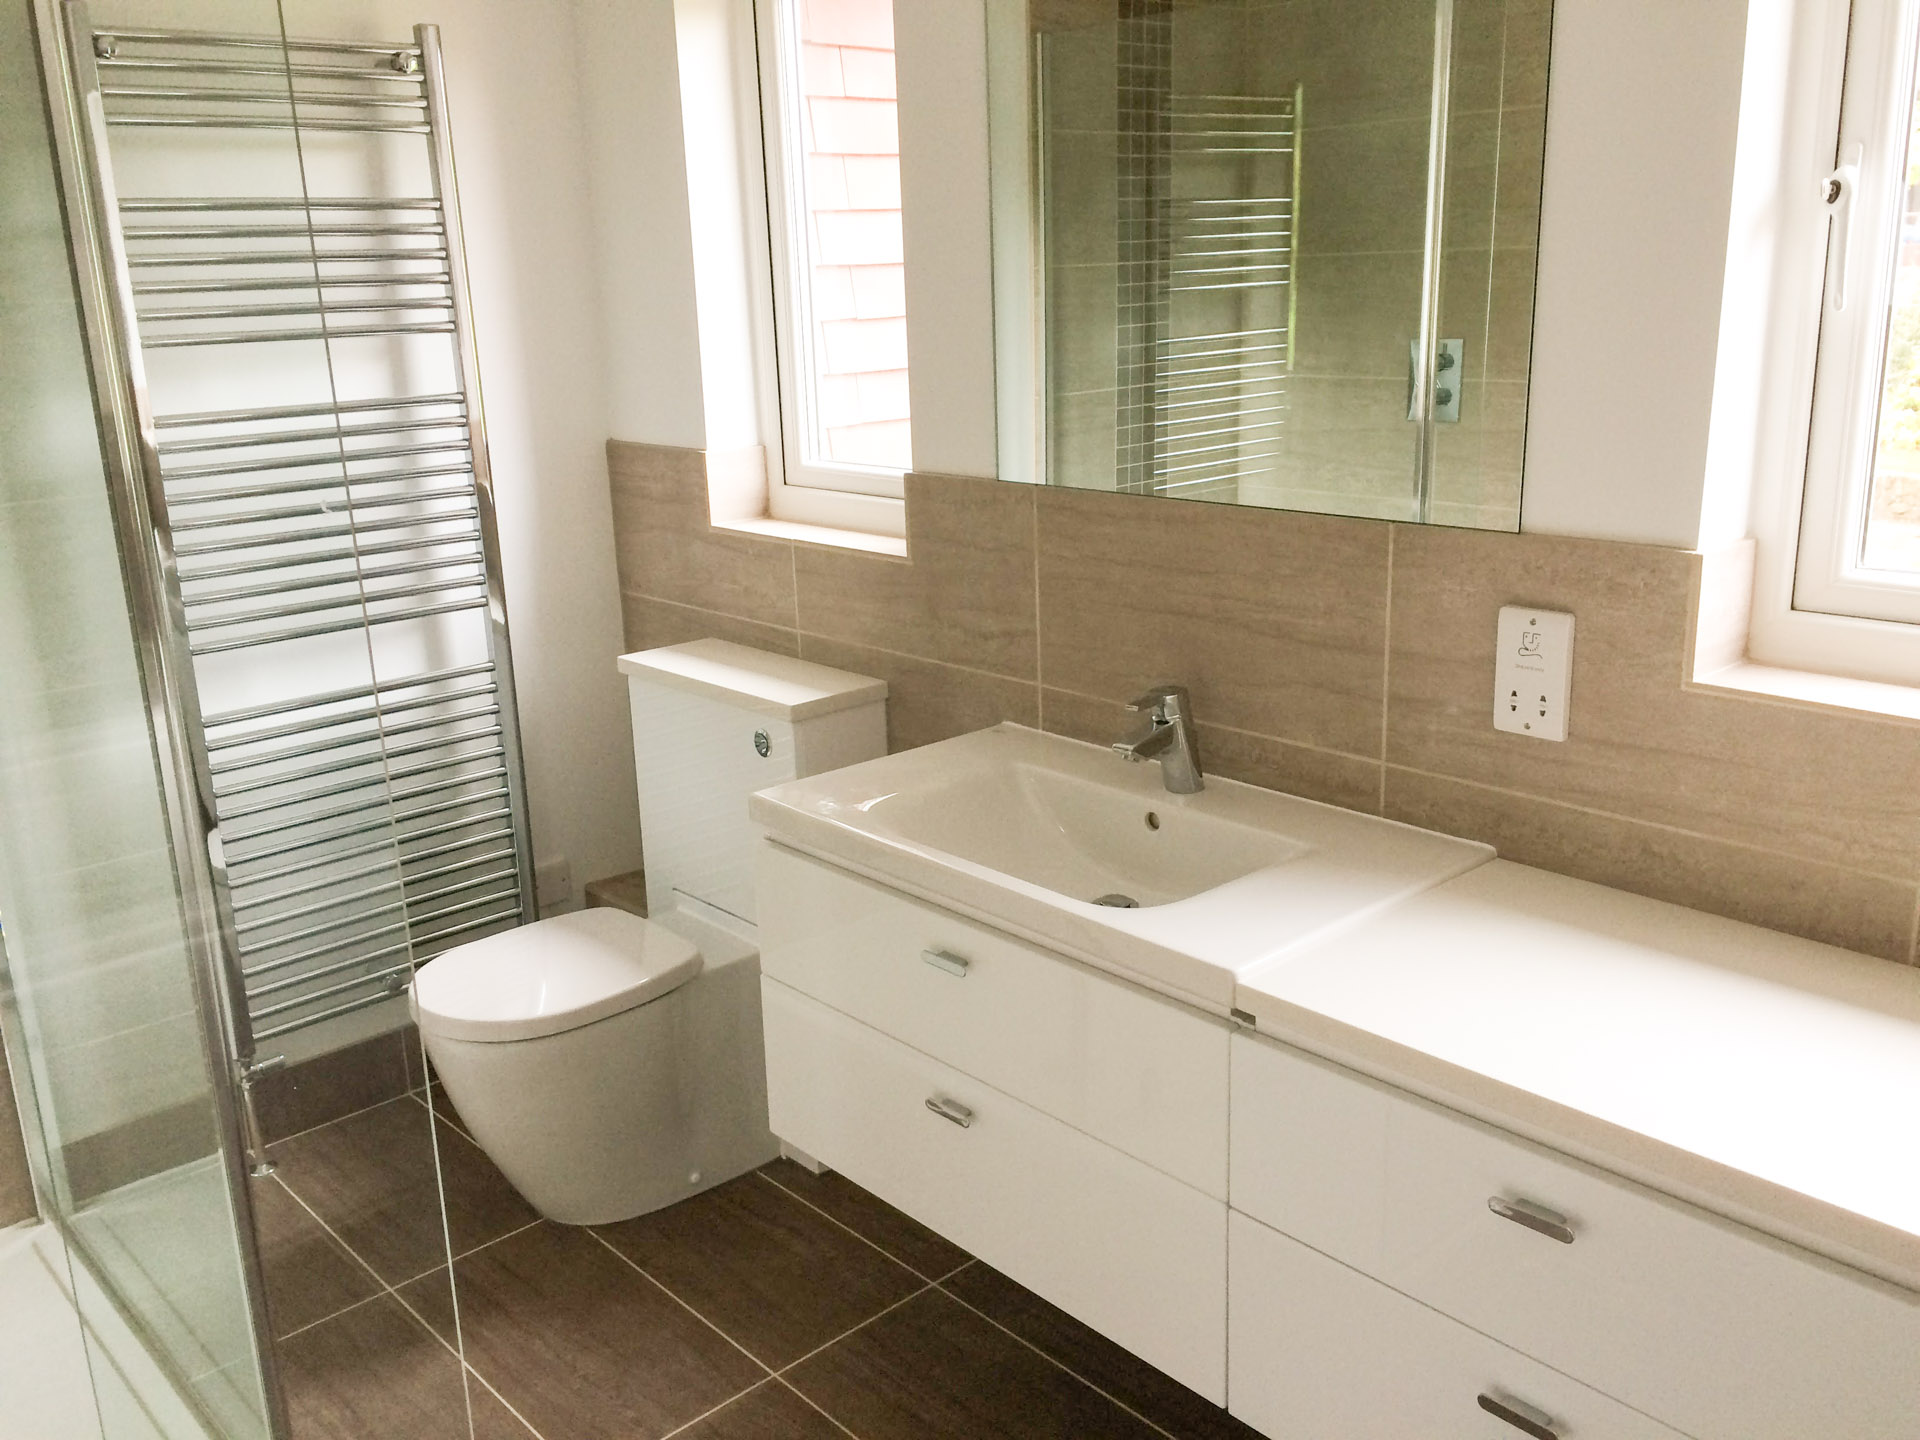 New bathroom in Sevenoaks - Joseph PCL